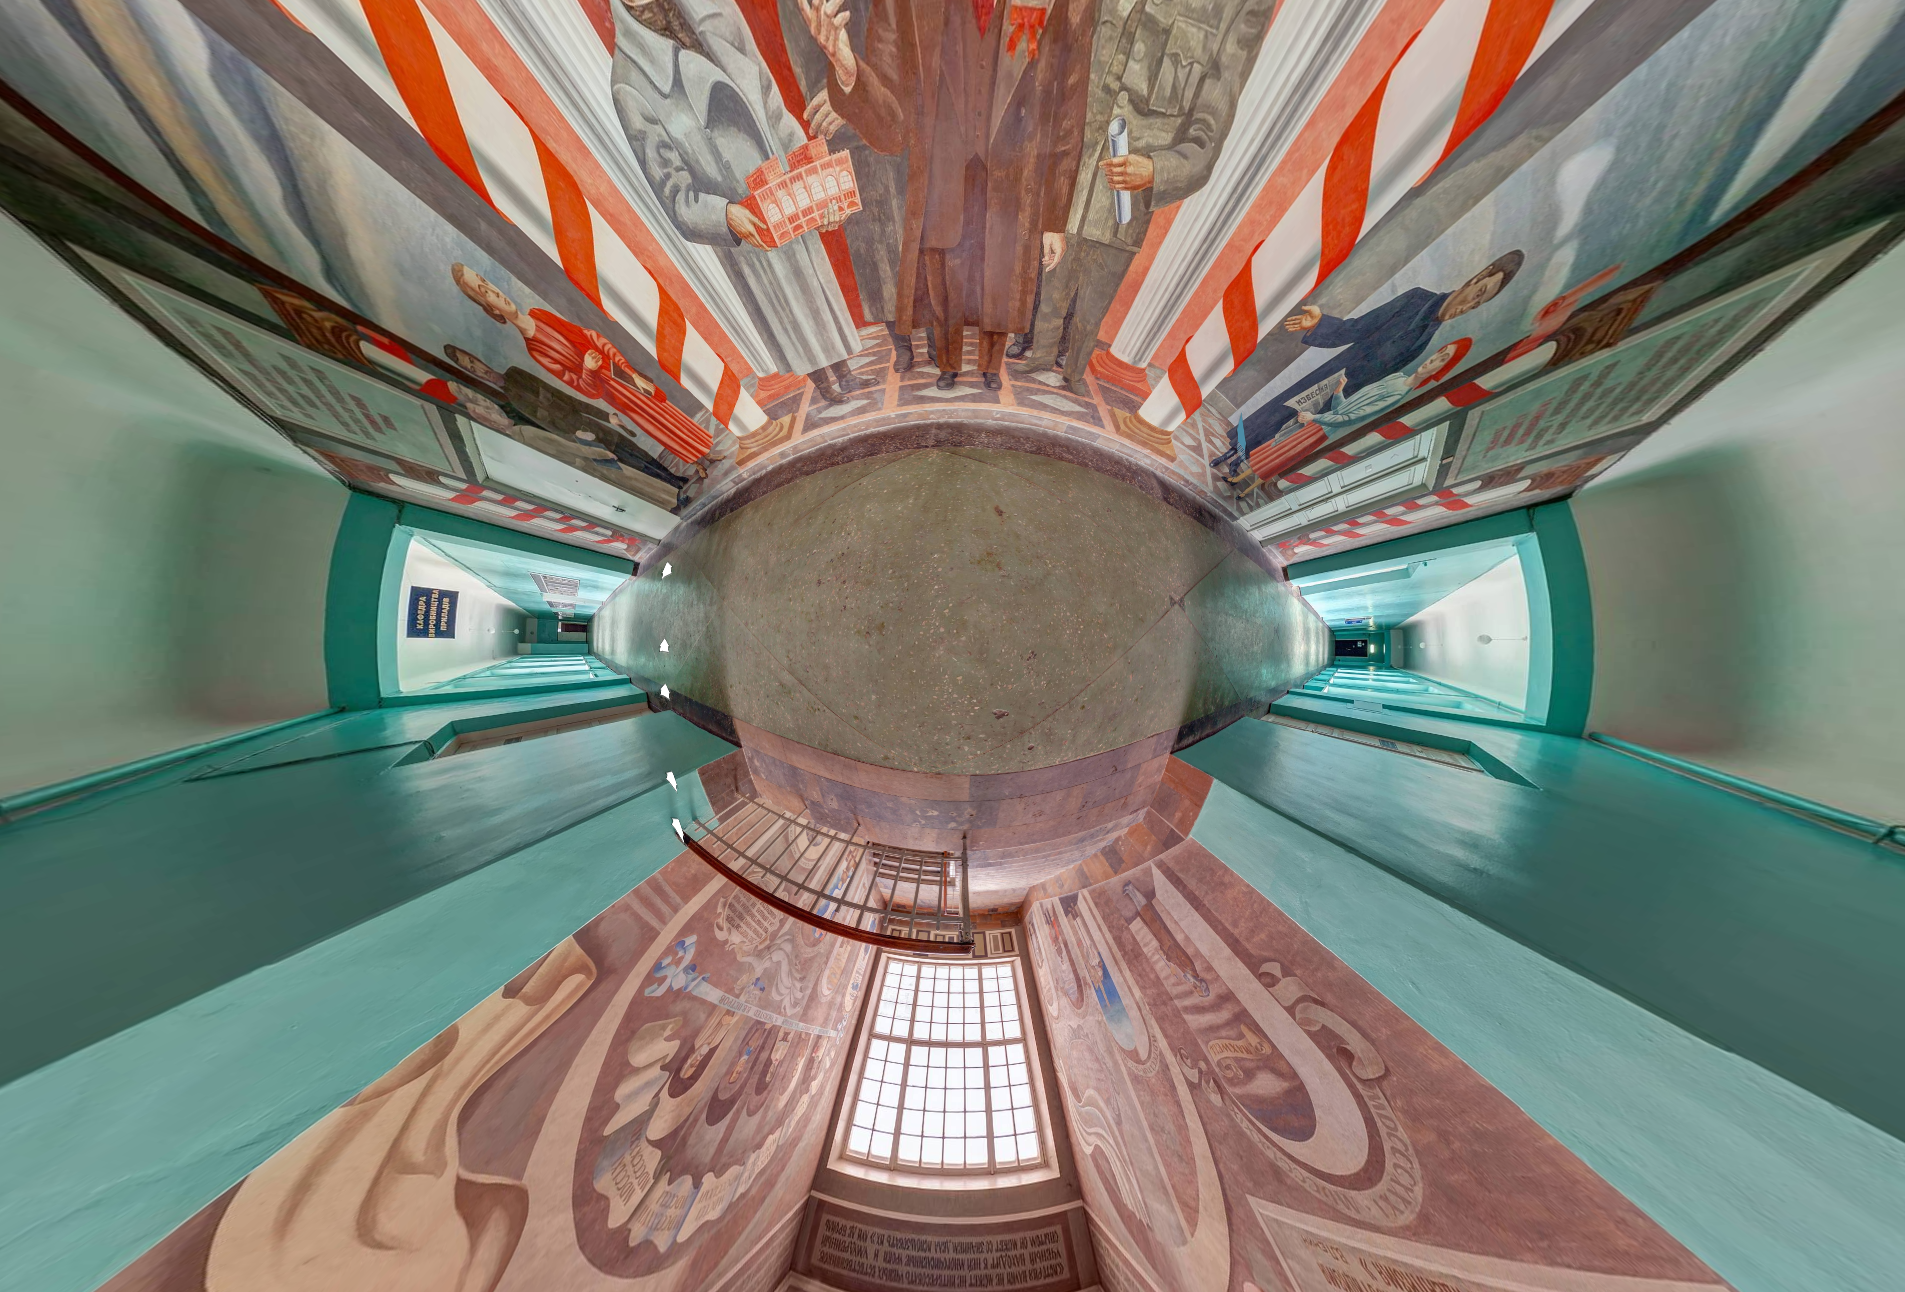 Distorted 360 Image of University Hallway